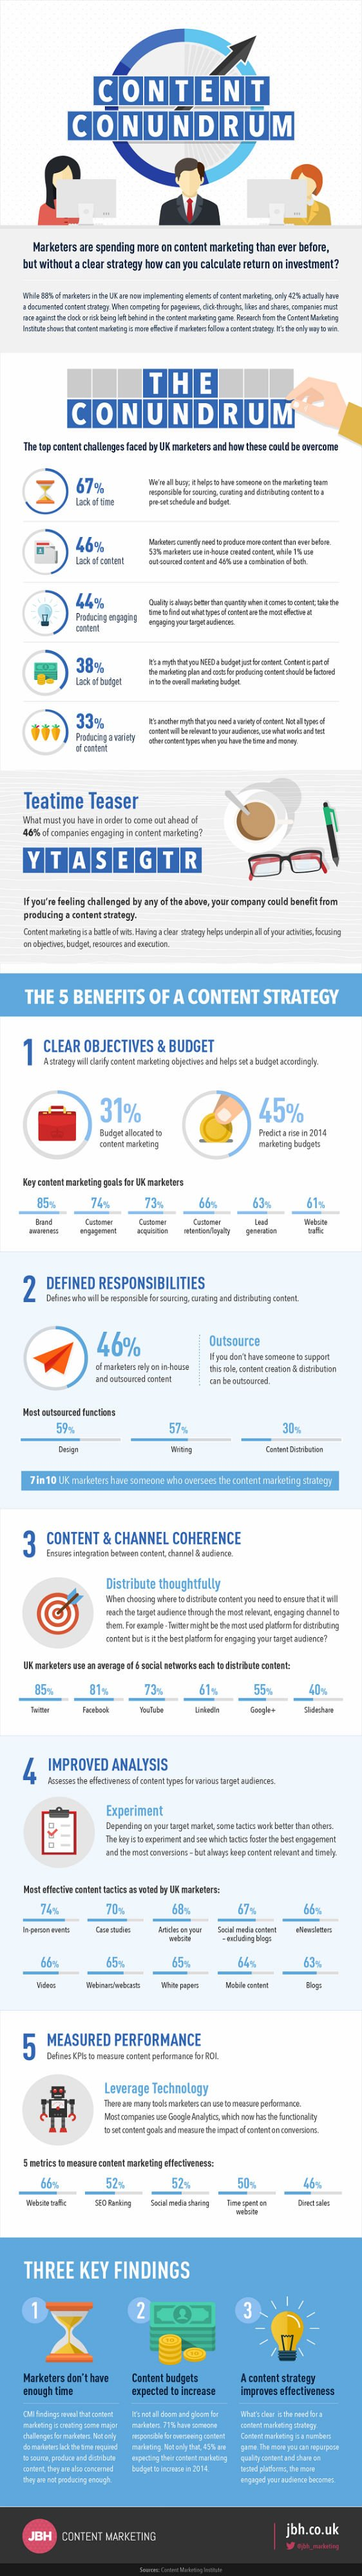 Content-Marketing-Conundrum-Infographic